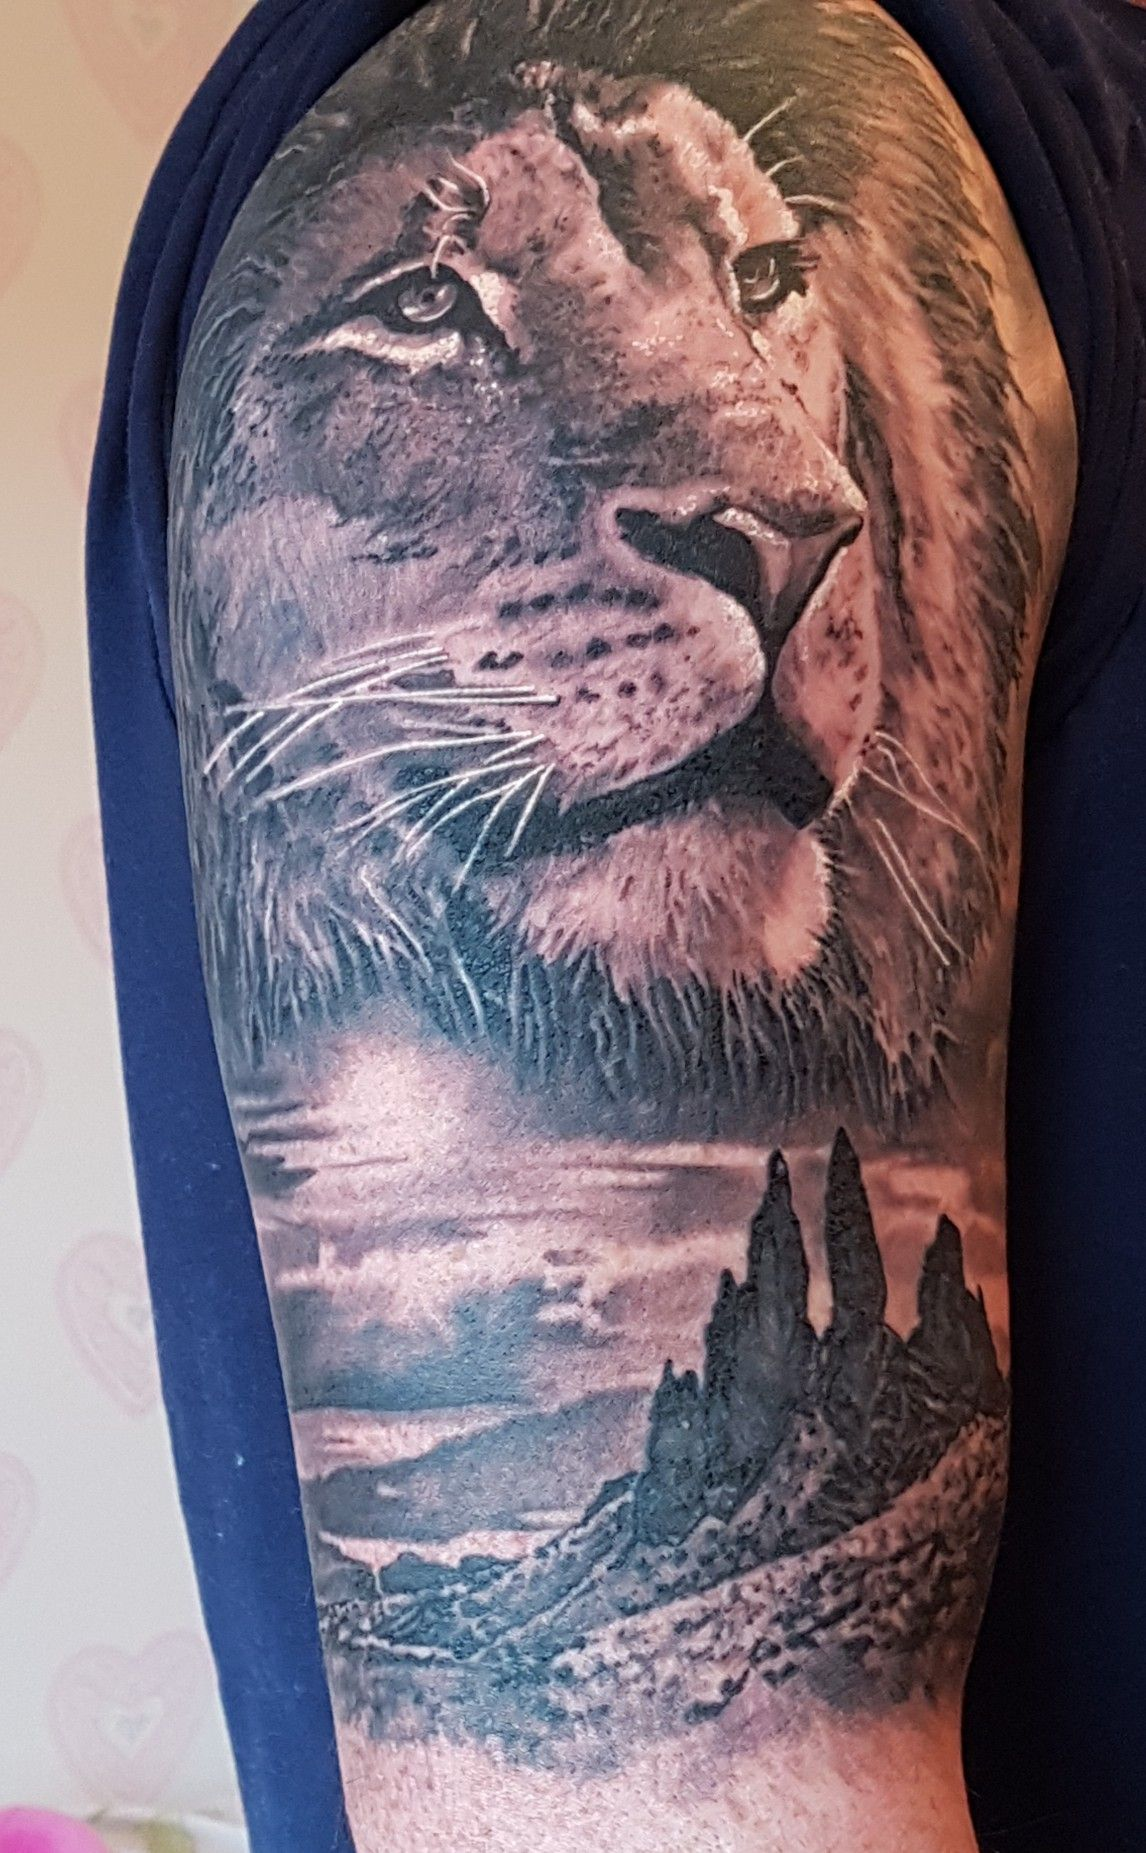 797f804947b79 After long time looking for lion tattoo i got this one it has the old man of  storr from skye.Thanks to Paul from sailor max in aberdeen.